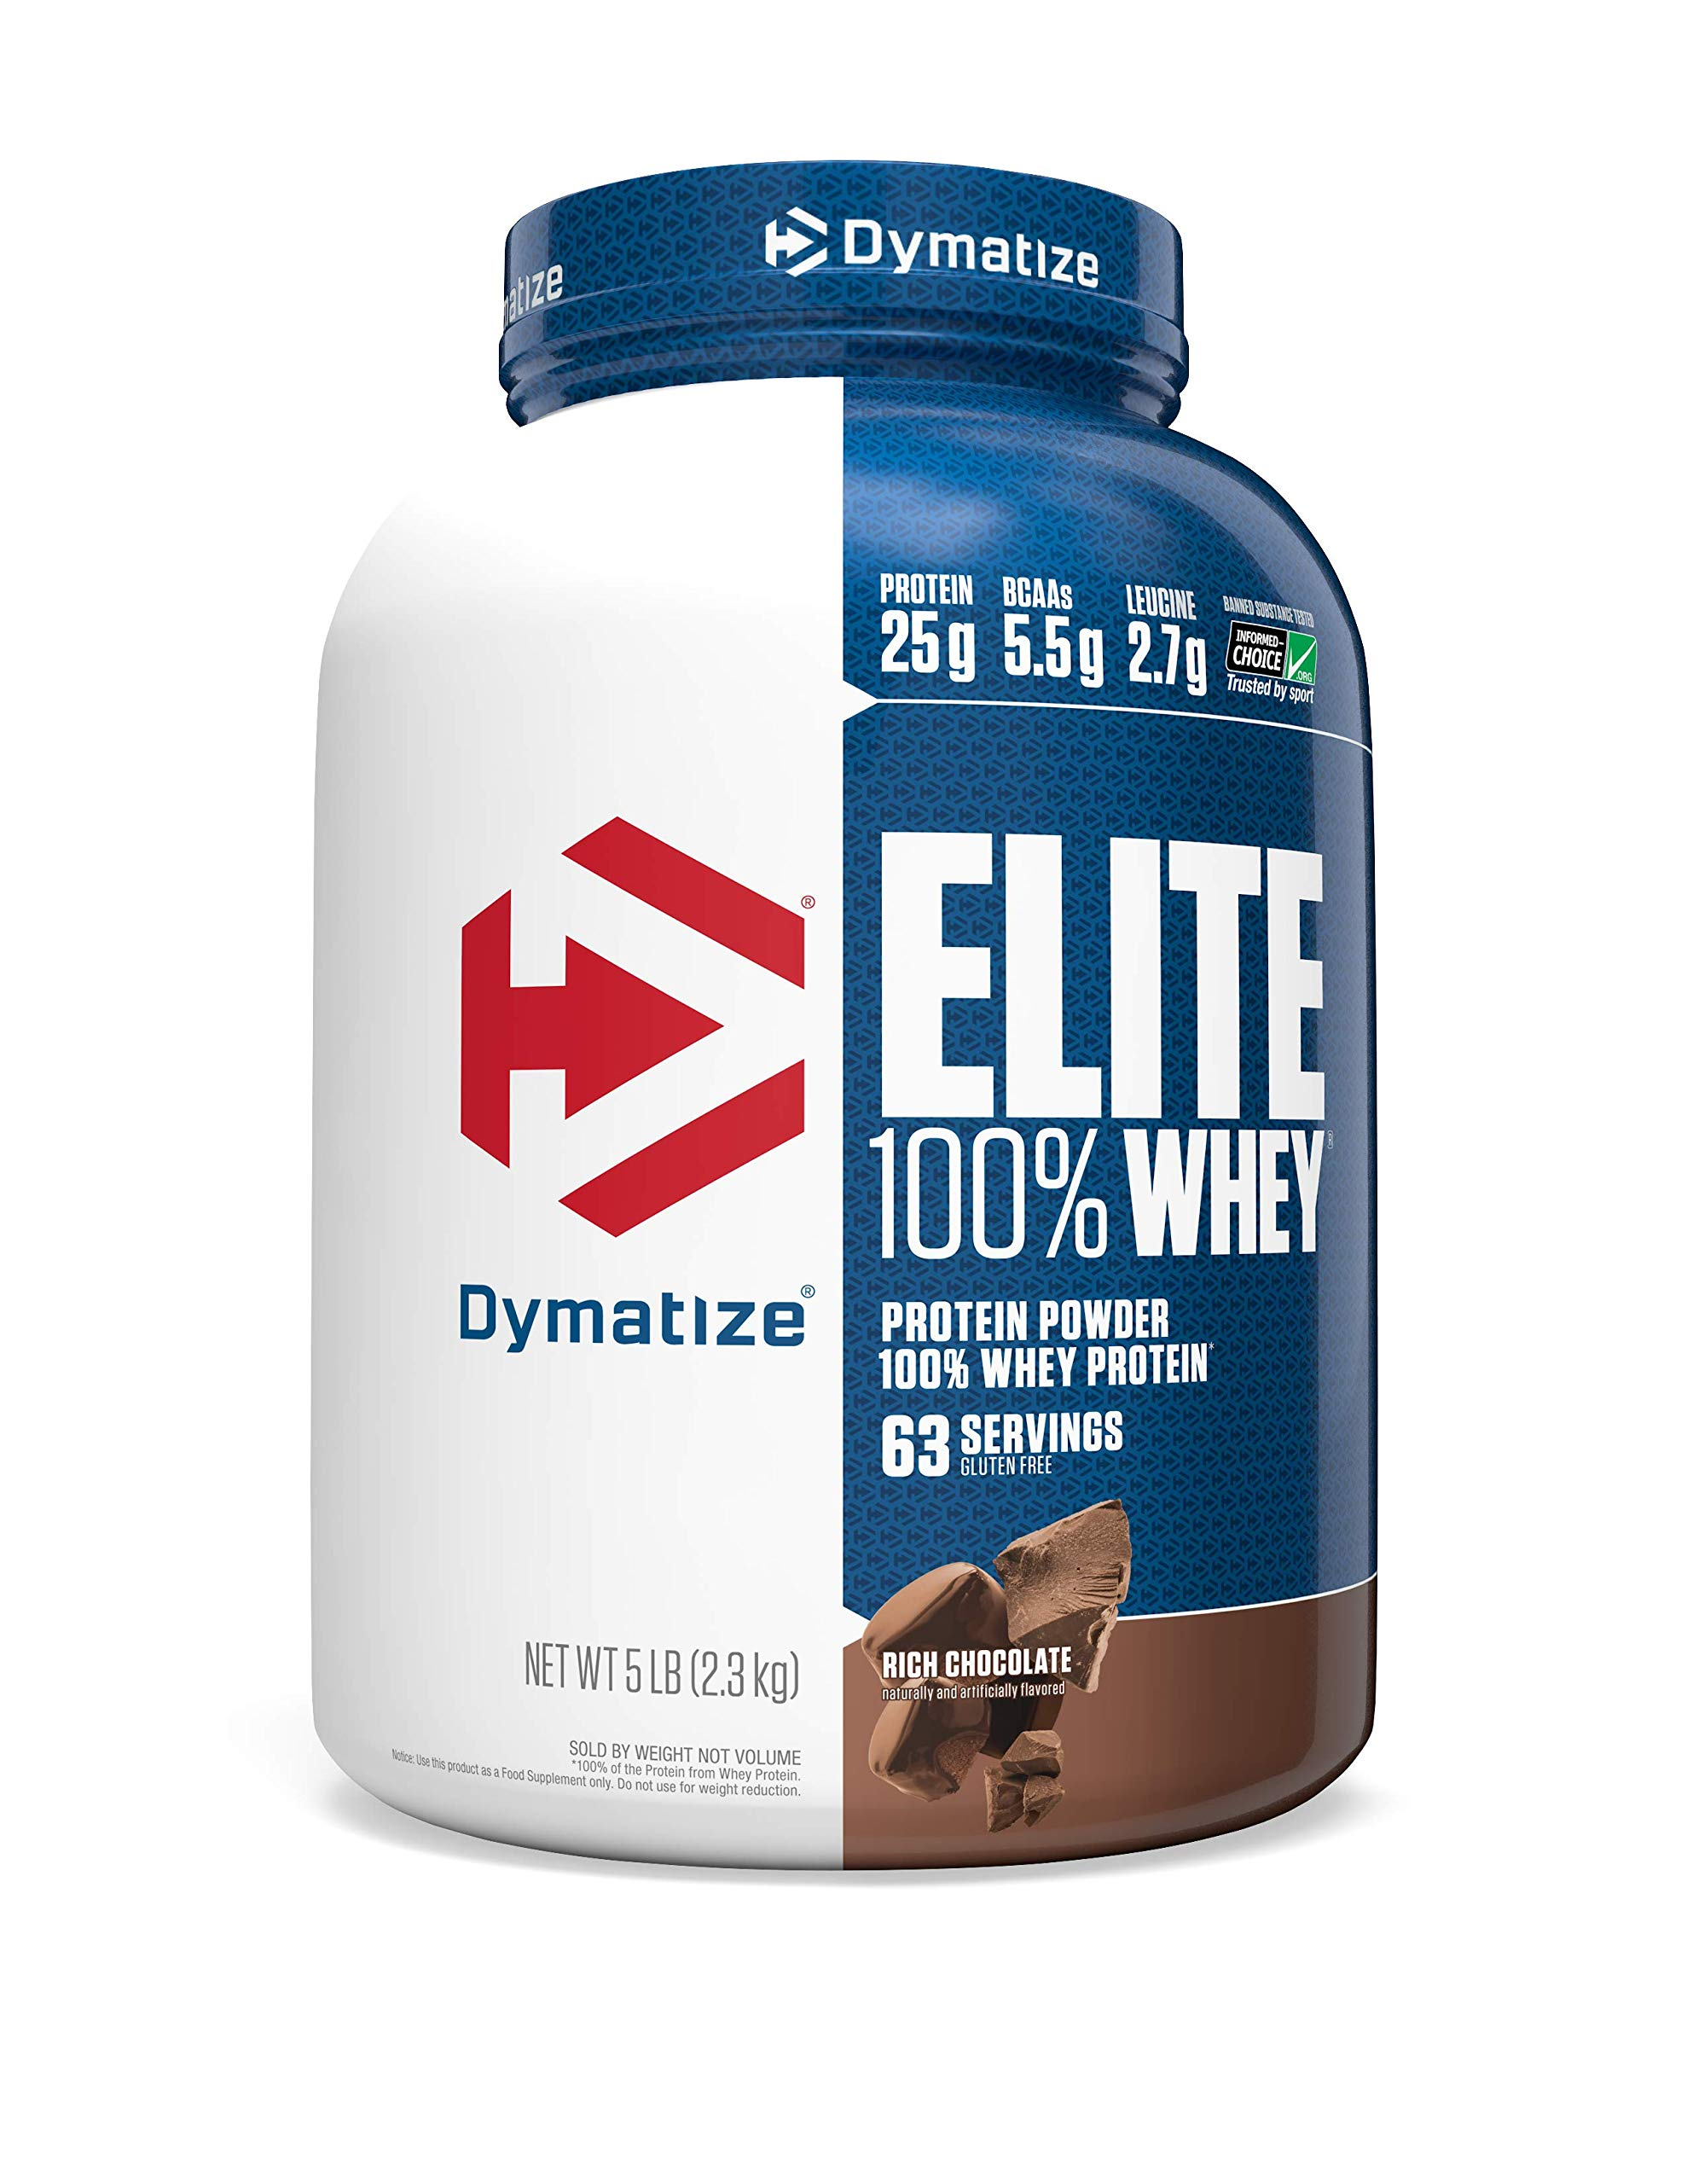 Dymatize Elite 100% Whey Protein Powder, Take Pre Workout or Post Workout, Quick Absorbing & Fast Digesting, Rich Chocolate, 5 Pound by Dymatize